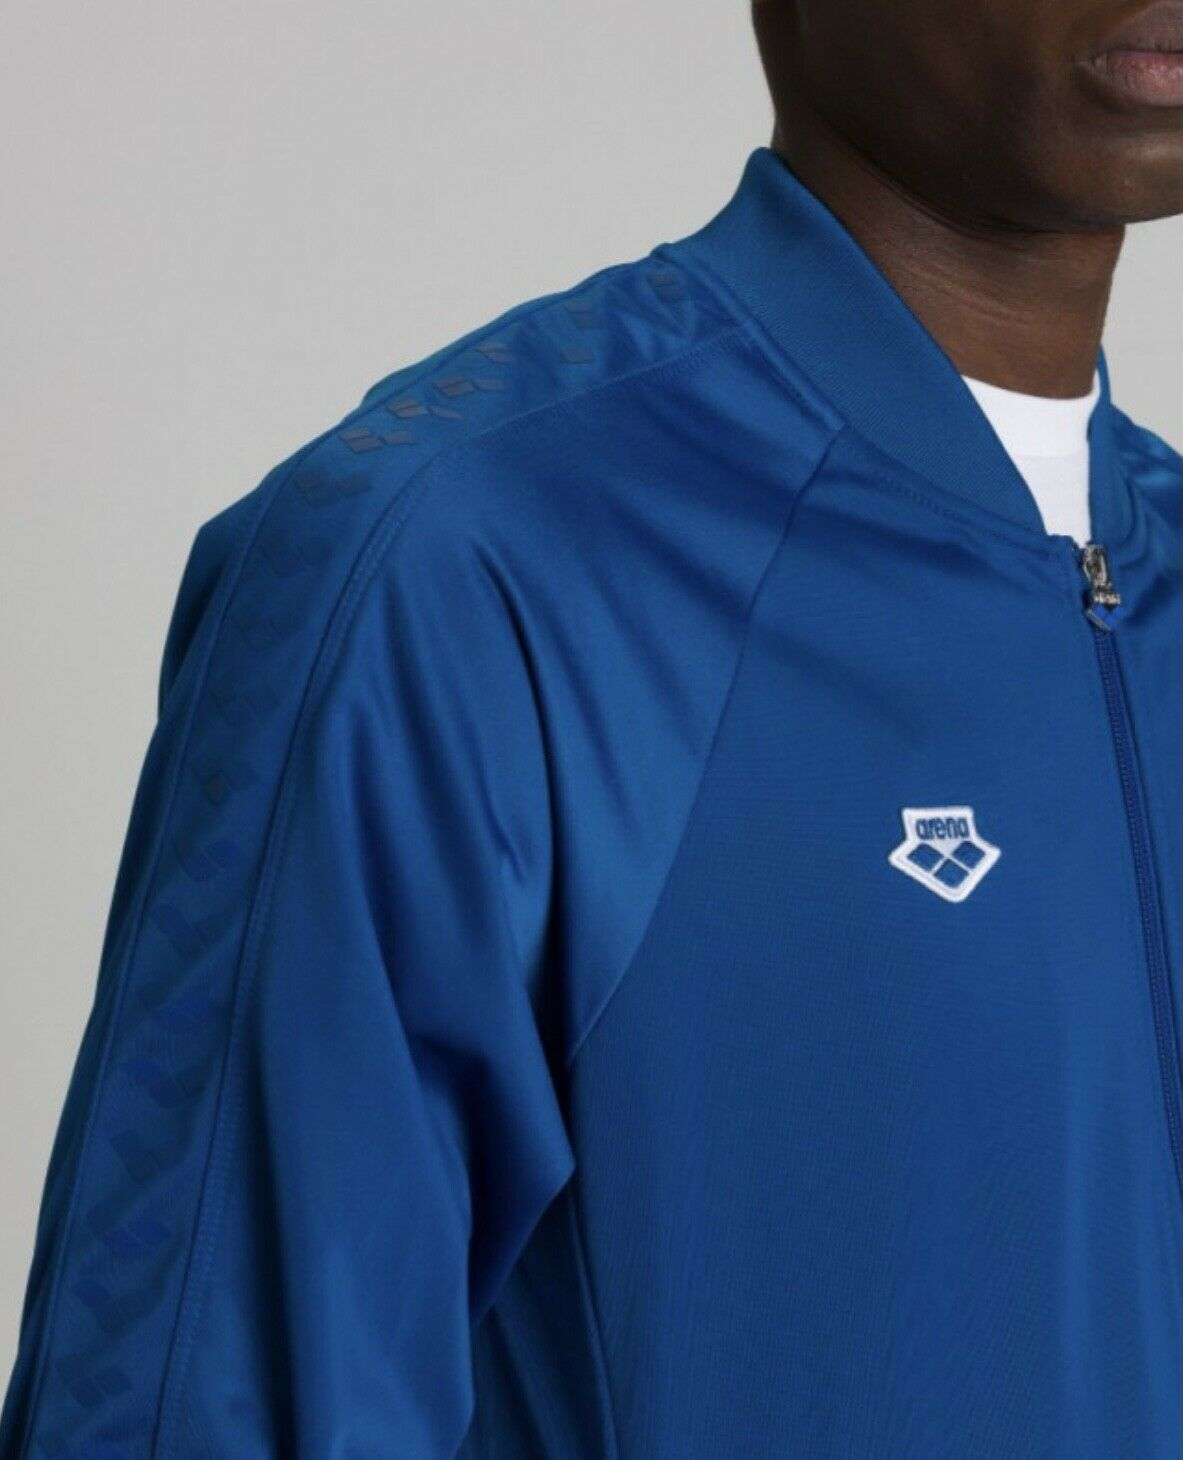 Arena relax IV team blue jacket brand new tags UK Large